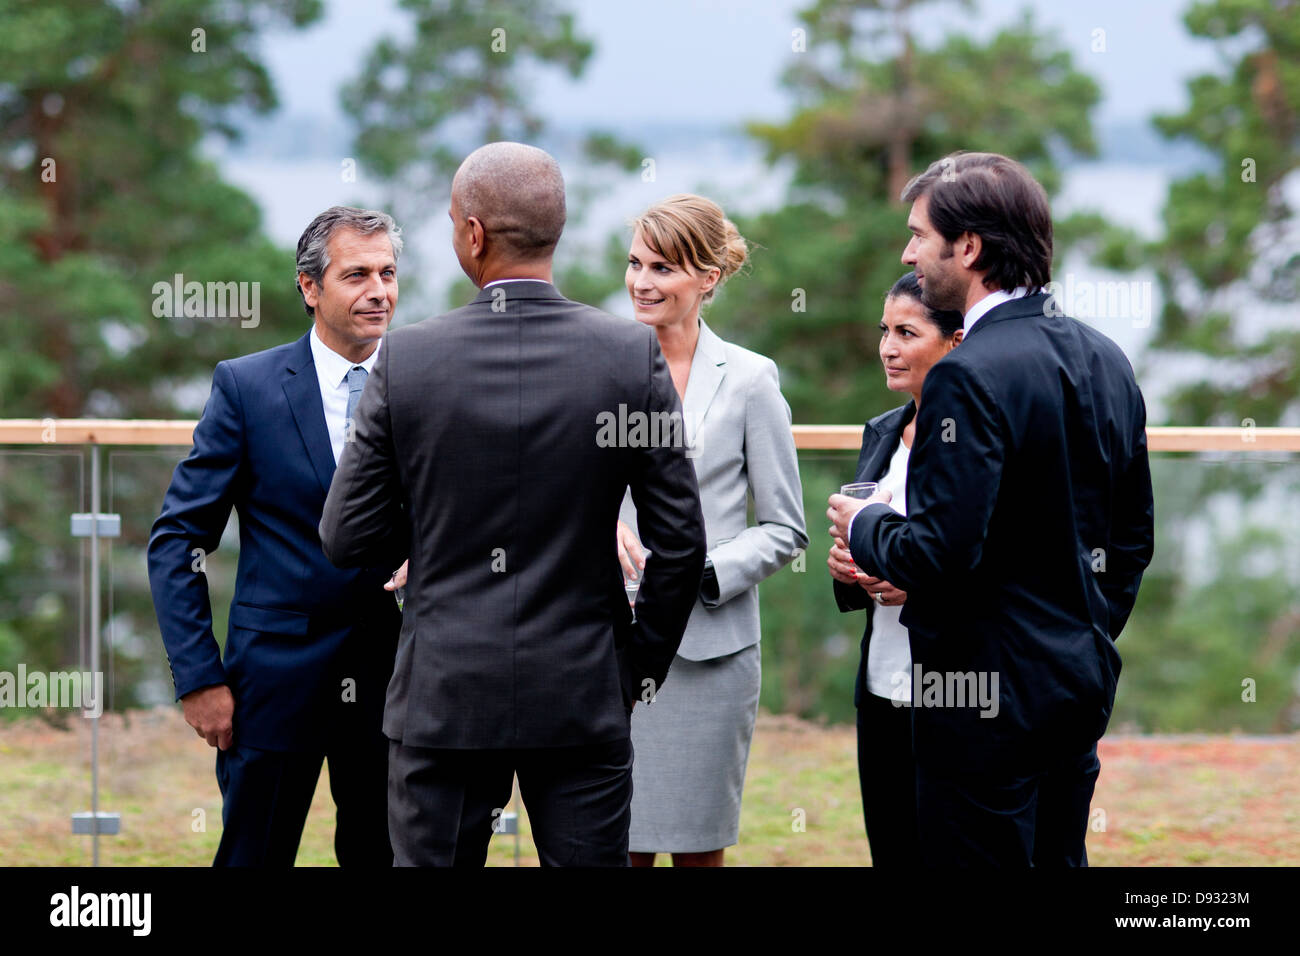 Businessmen and businesswomen discussing outdoors - Stock Image